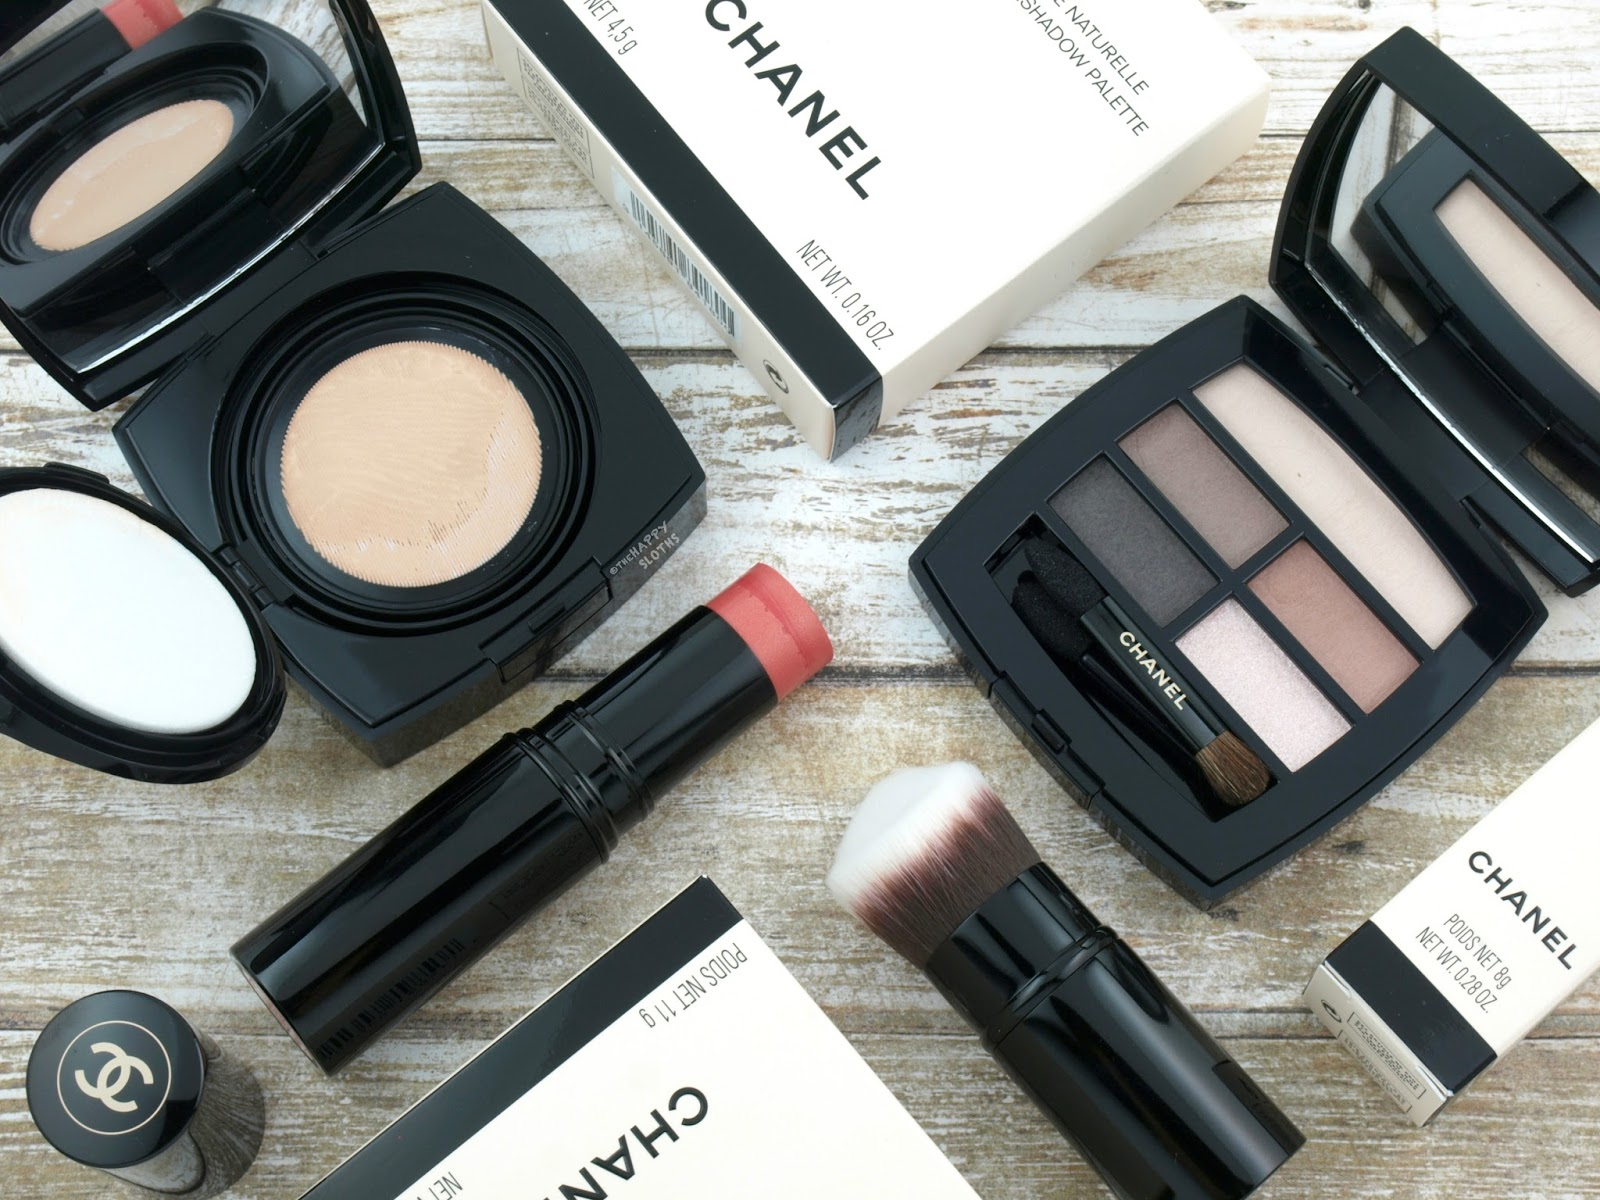 Chanel Les Beiges de Chanel Collection: Review and Swatches